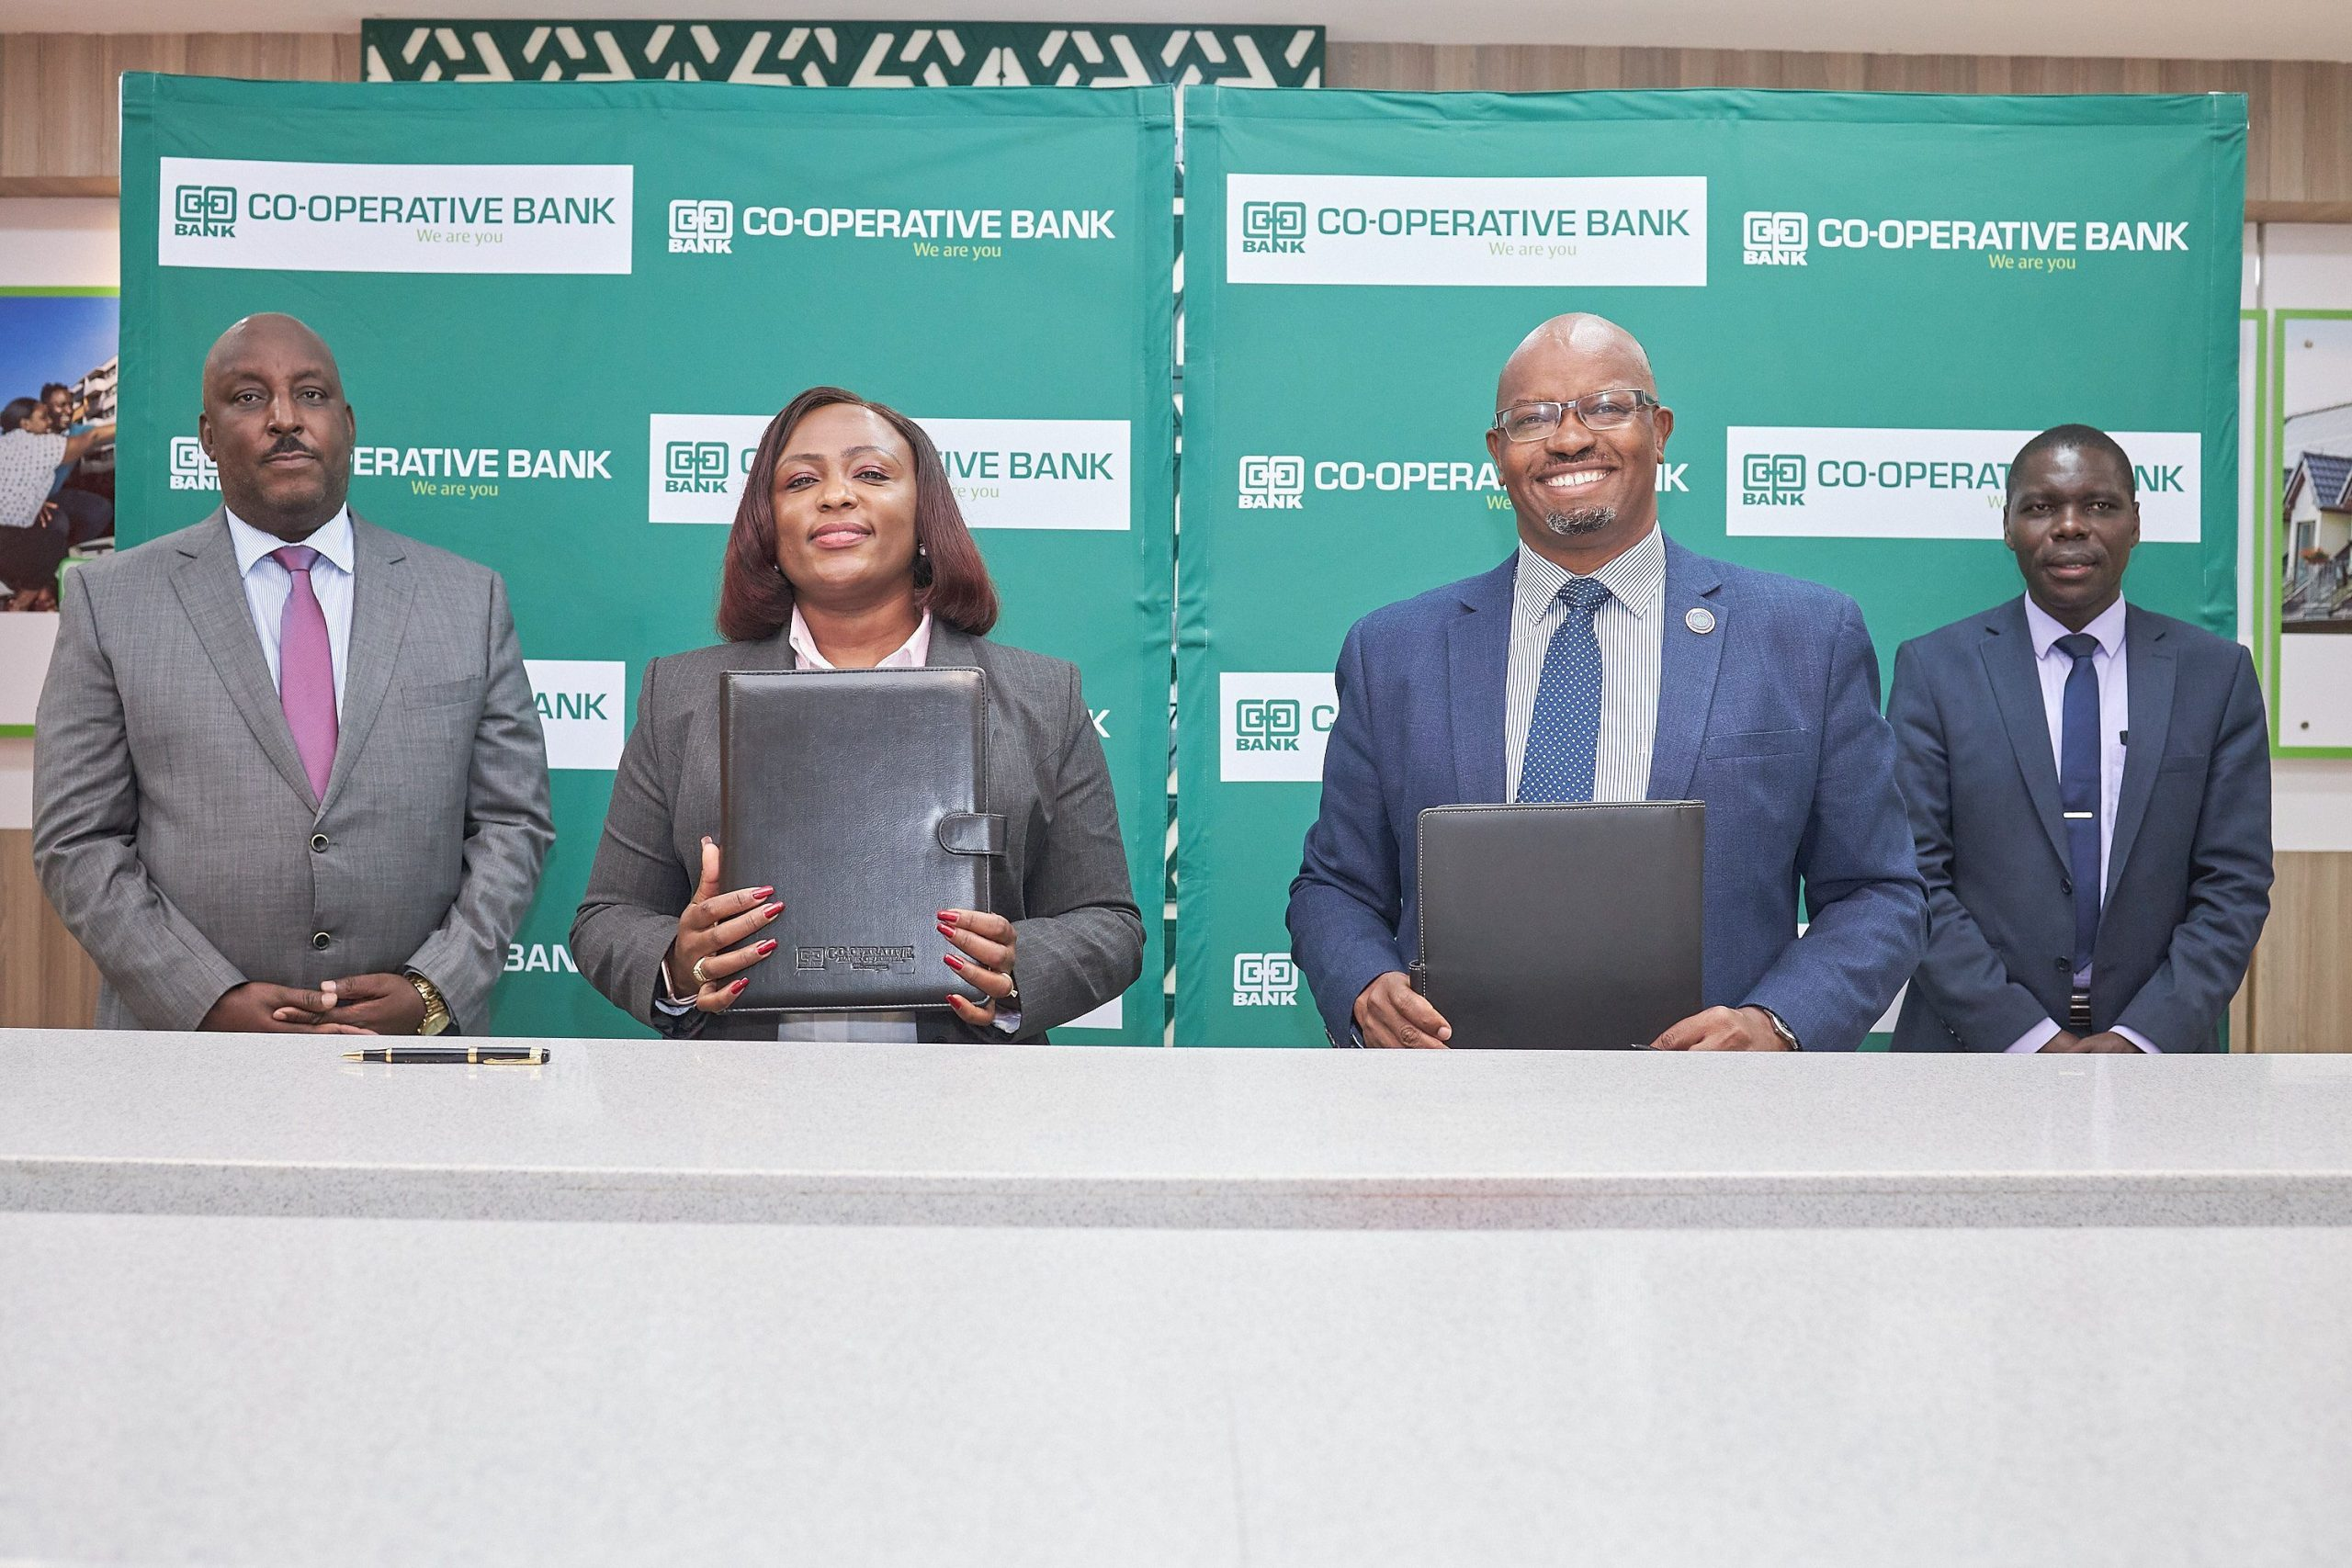 Co-operative bank launches the GoodHome mortgage 'Property Hub'